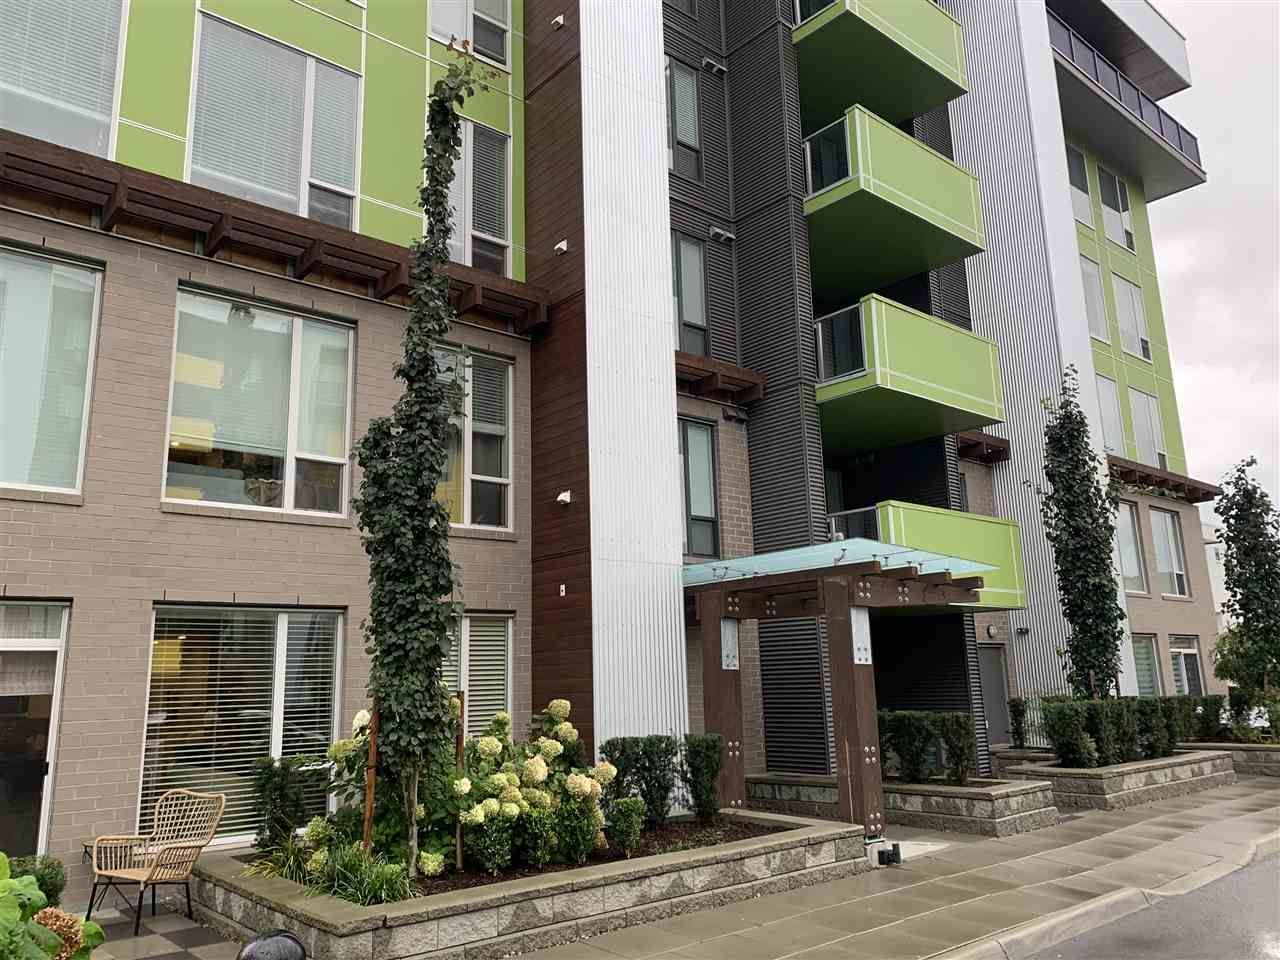 """Main Photo: 205 2565 WARE Street in Abbotsford: Central Abbotsford Condo for sale in """"MILL DISTRICT"""" : MLS®# R2485173"""